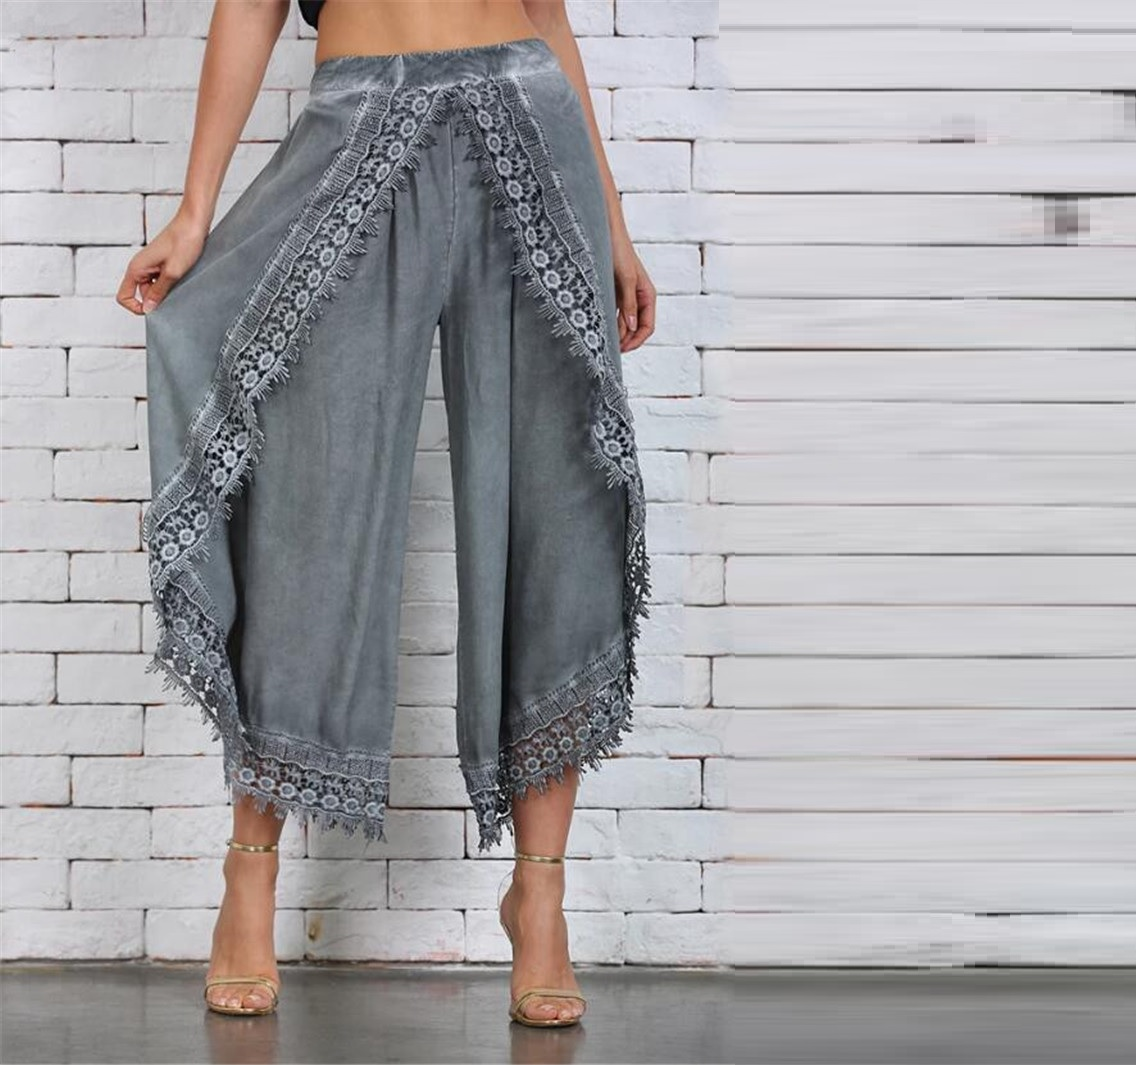 5 Kinds of Pants for Making You a Fashionista